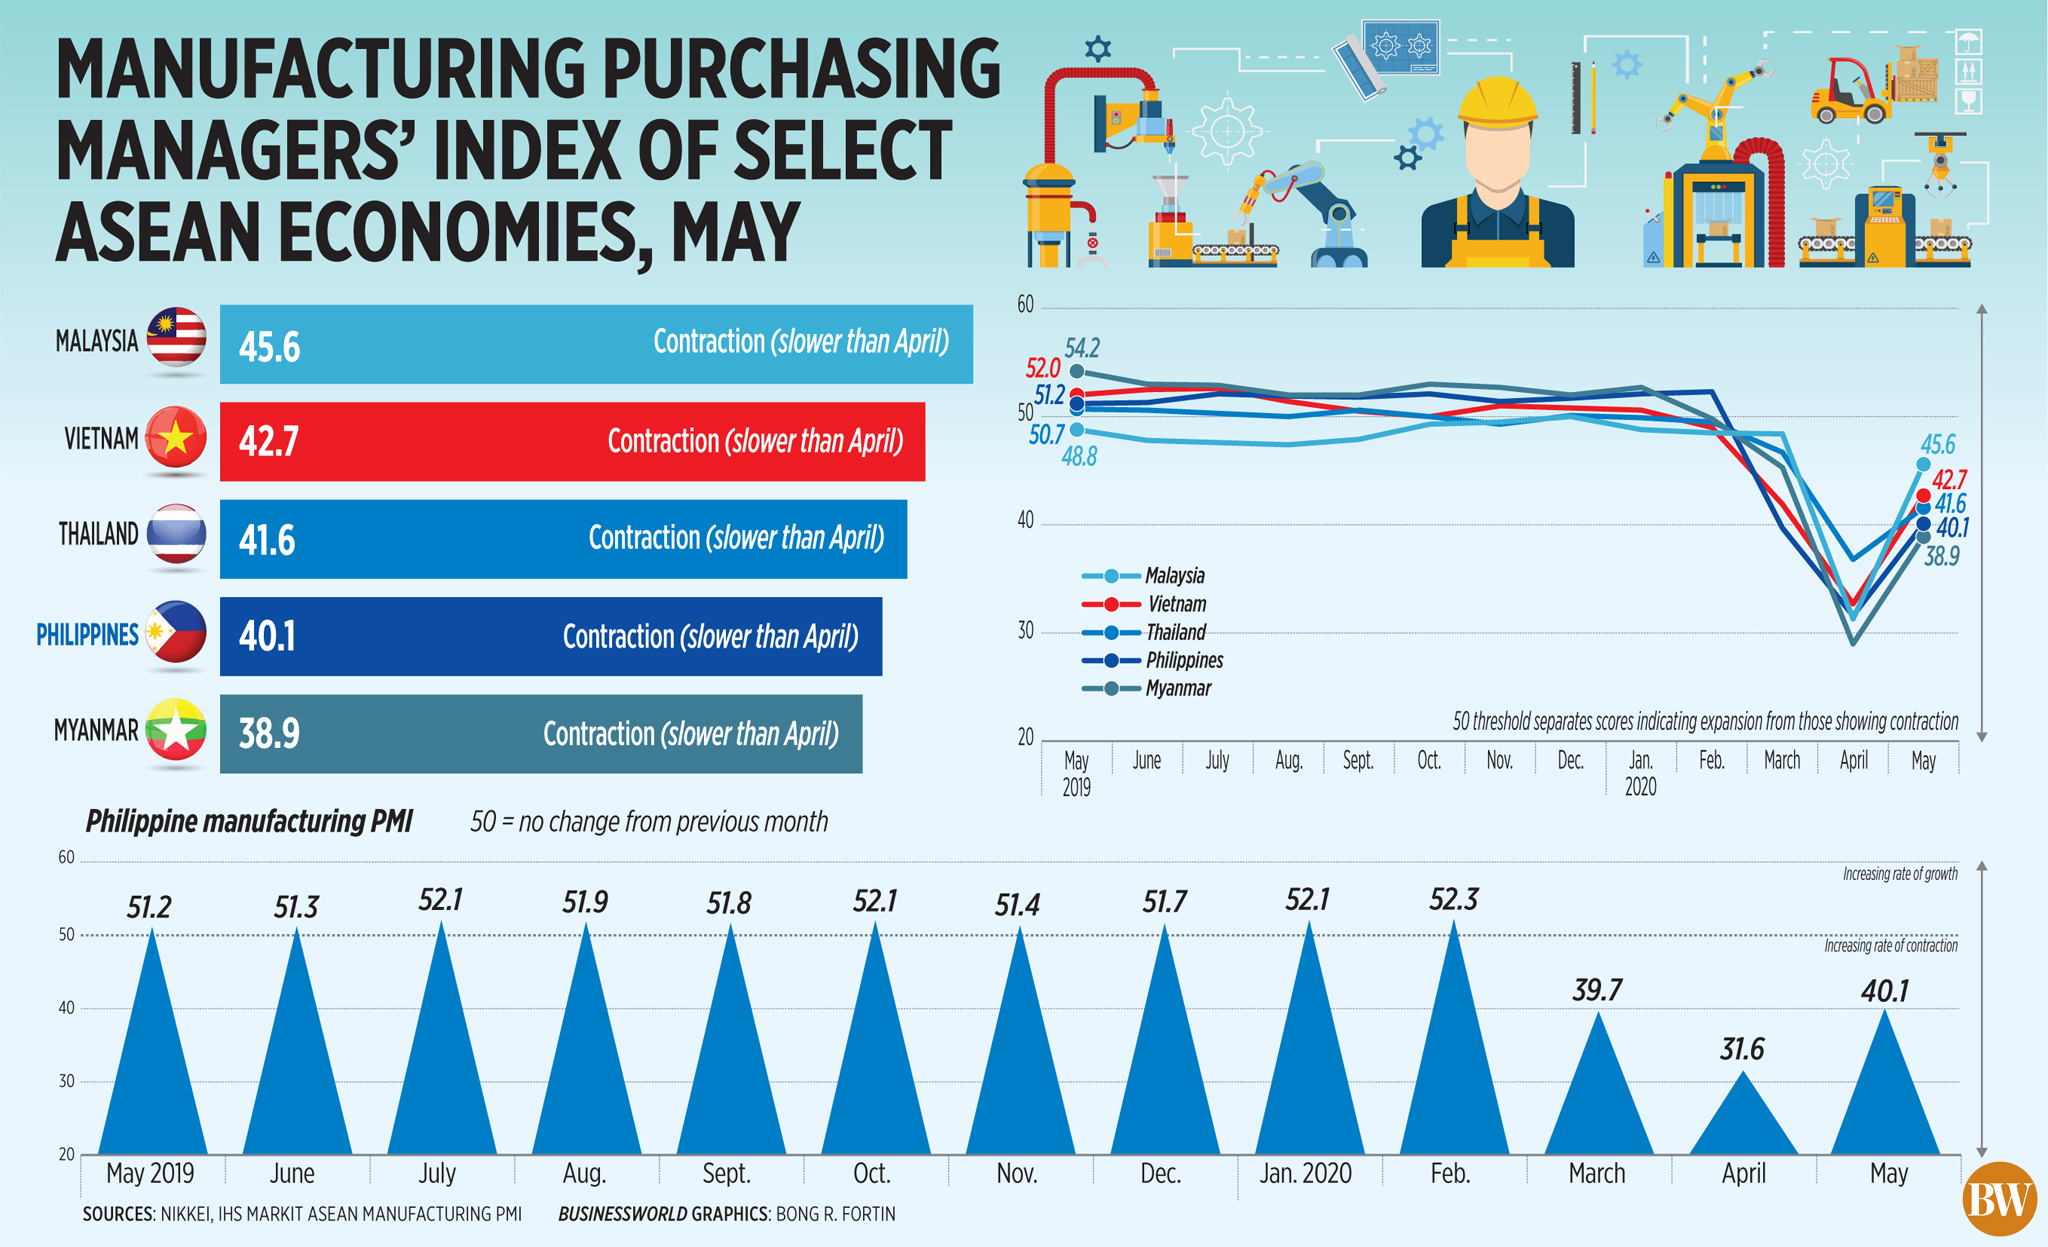 Manufacturing purchasing managers' index of select ASEAN economies, May (2020)